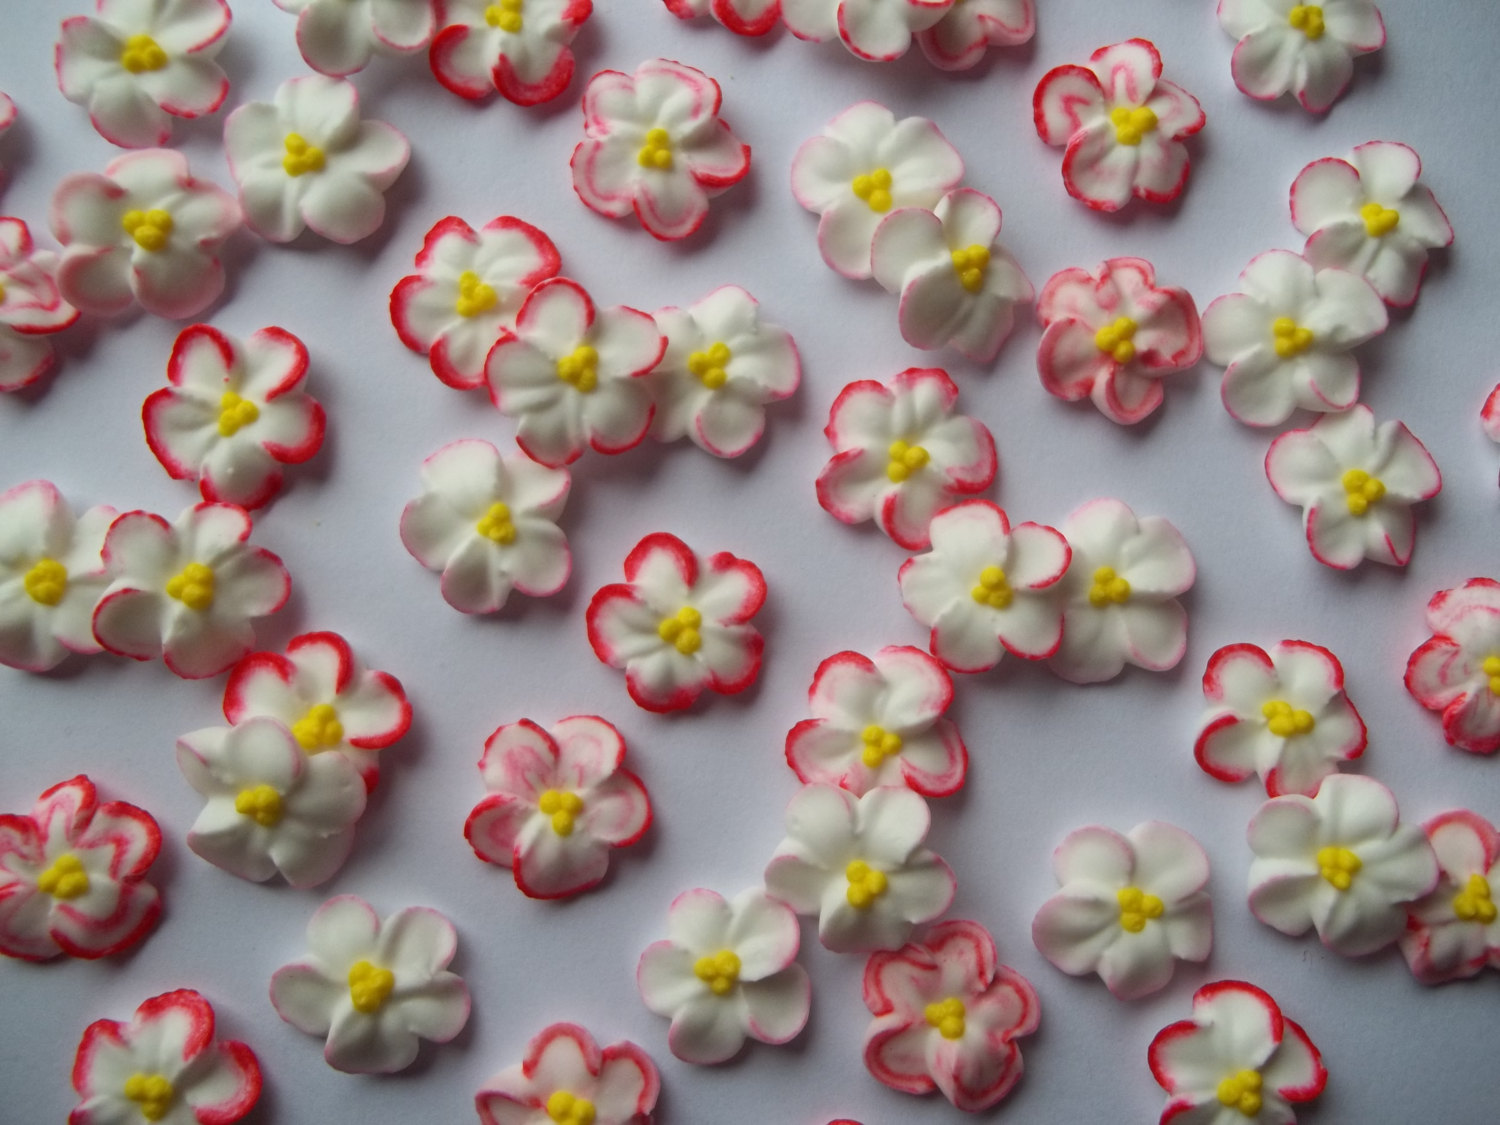 Red Flowers Cake Decoration 27 High Resolution Wallpaper ...